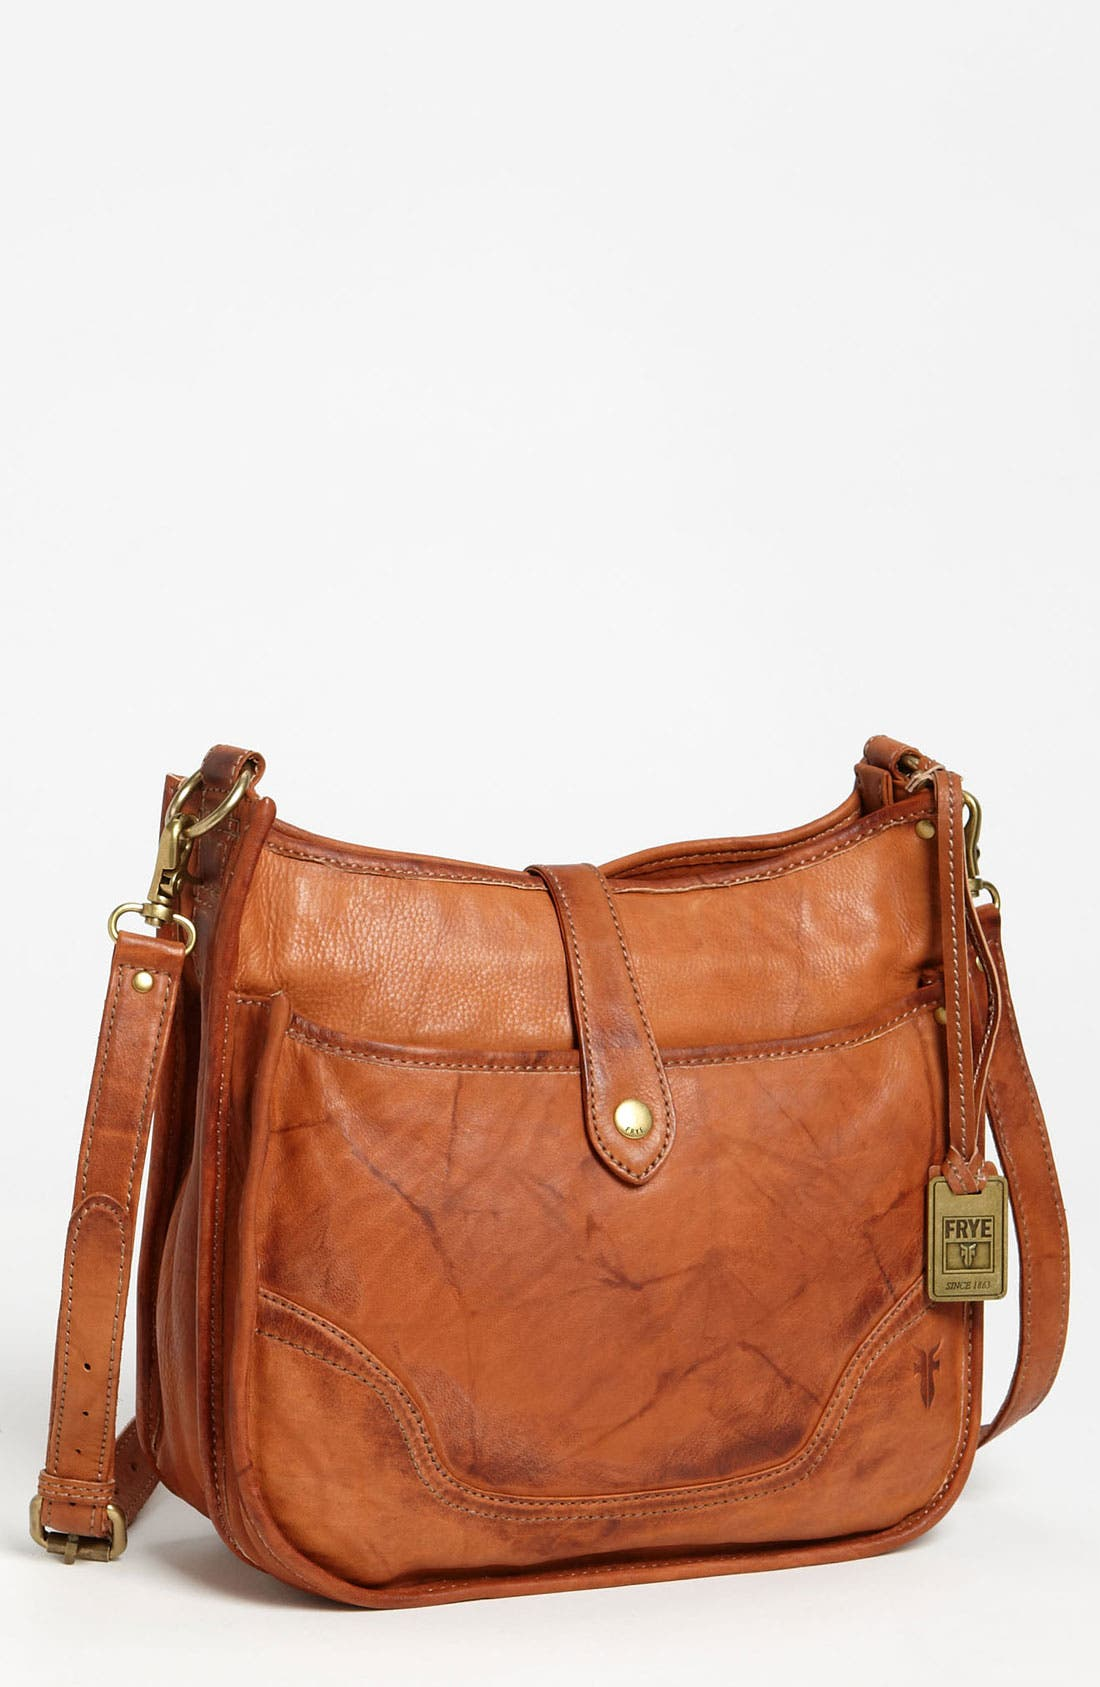 Frye 'Campus' Leather Crossbody Bag